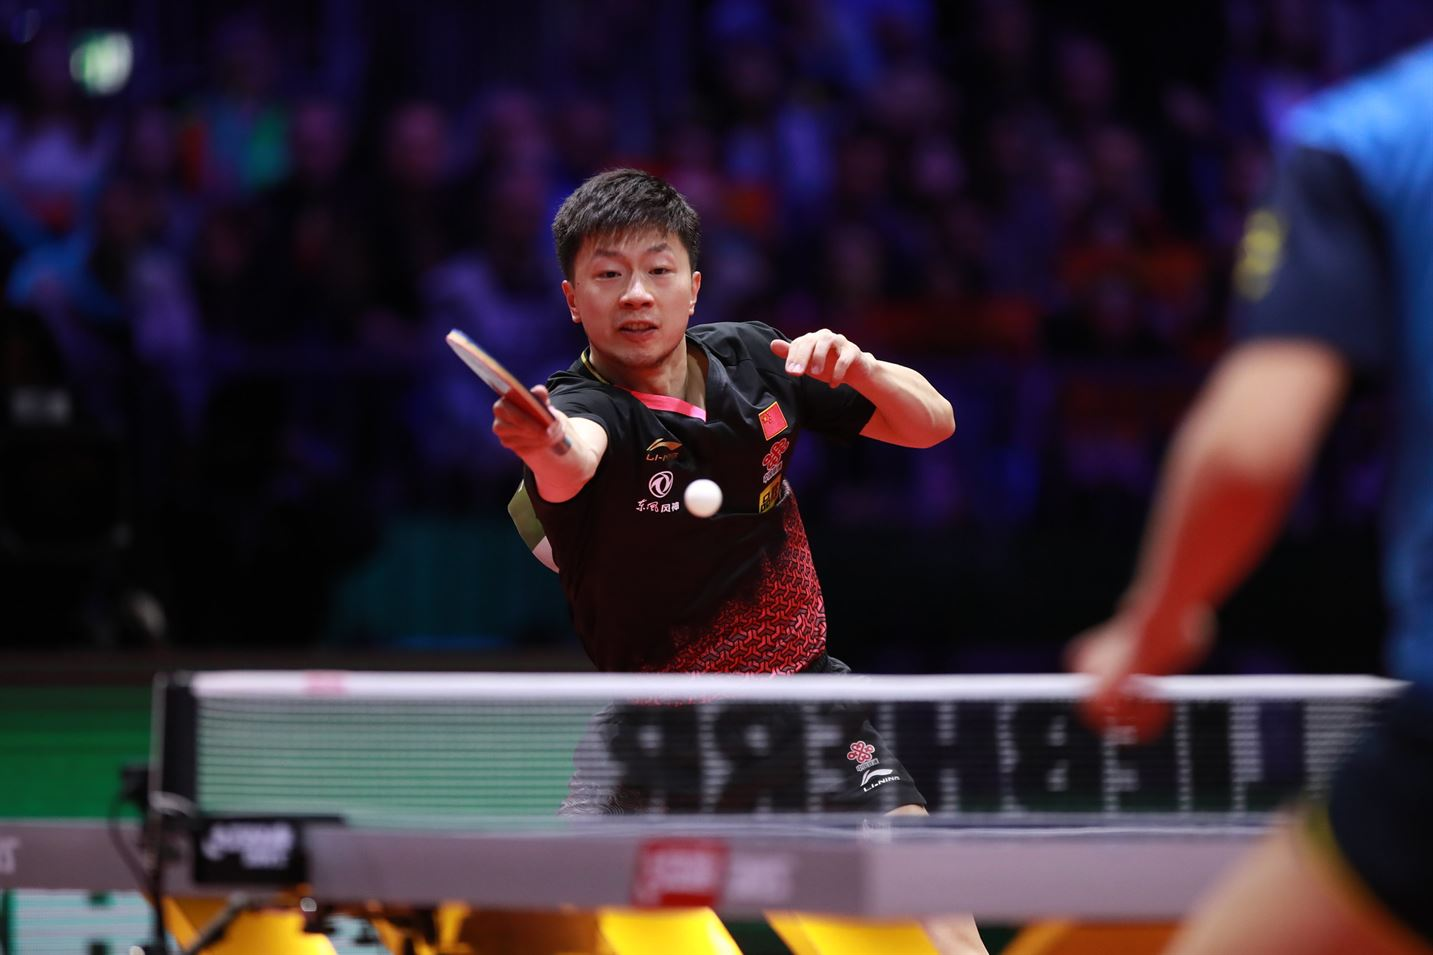 2019 World Championships Review